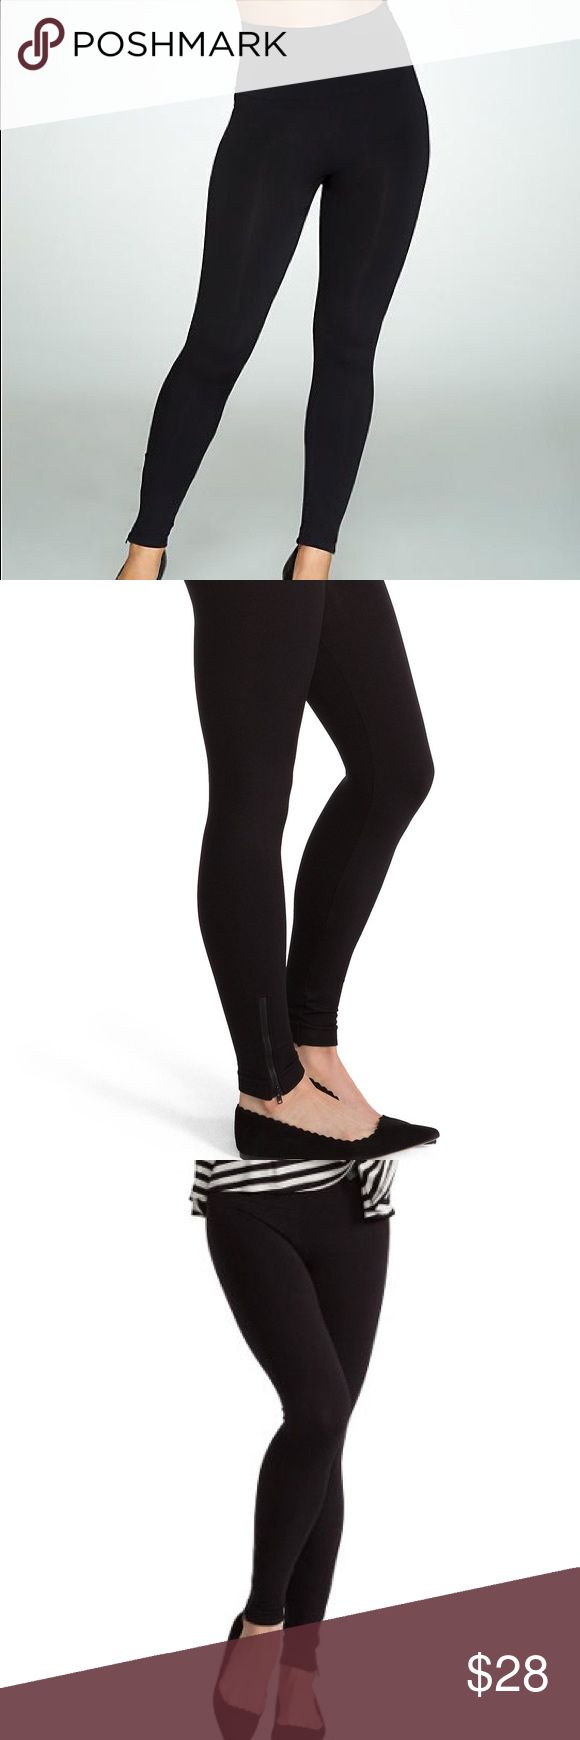 SPANX Seamless leggings Hardware: zipper detail at the ankle Features: full coverage waistband, seamless design Rise: at the waist Leg Shape: legging Fit: fitted; cut to follow the lines of the body SPANX Pants Leggings